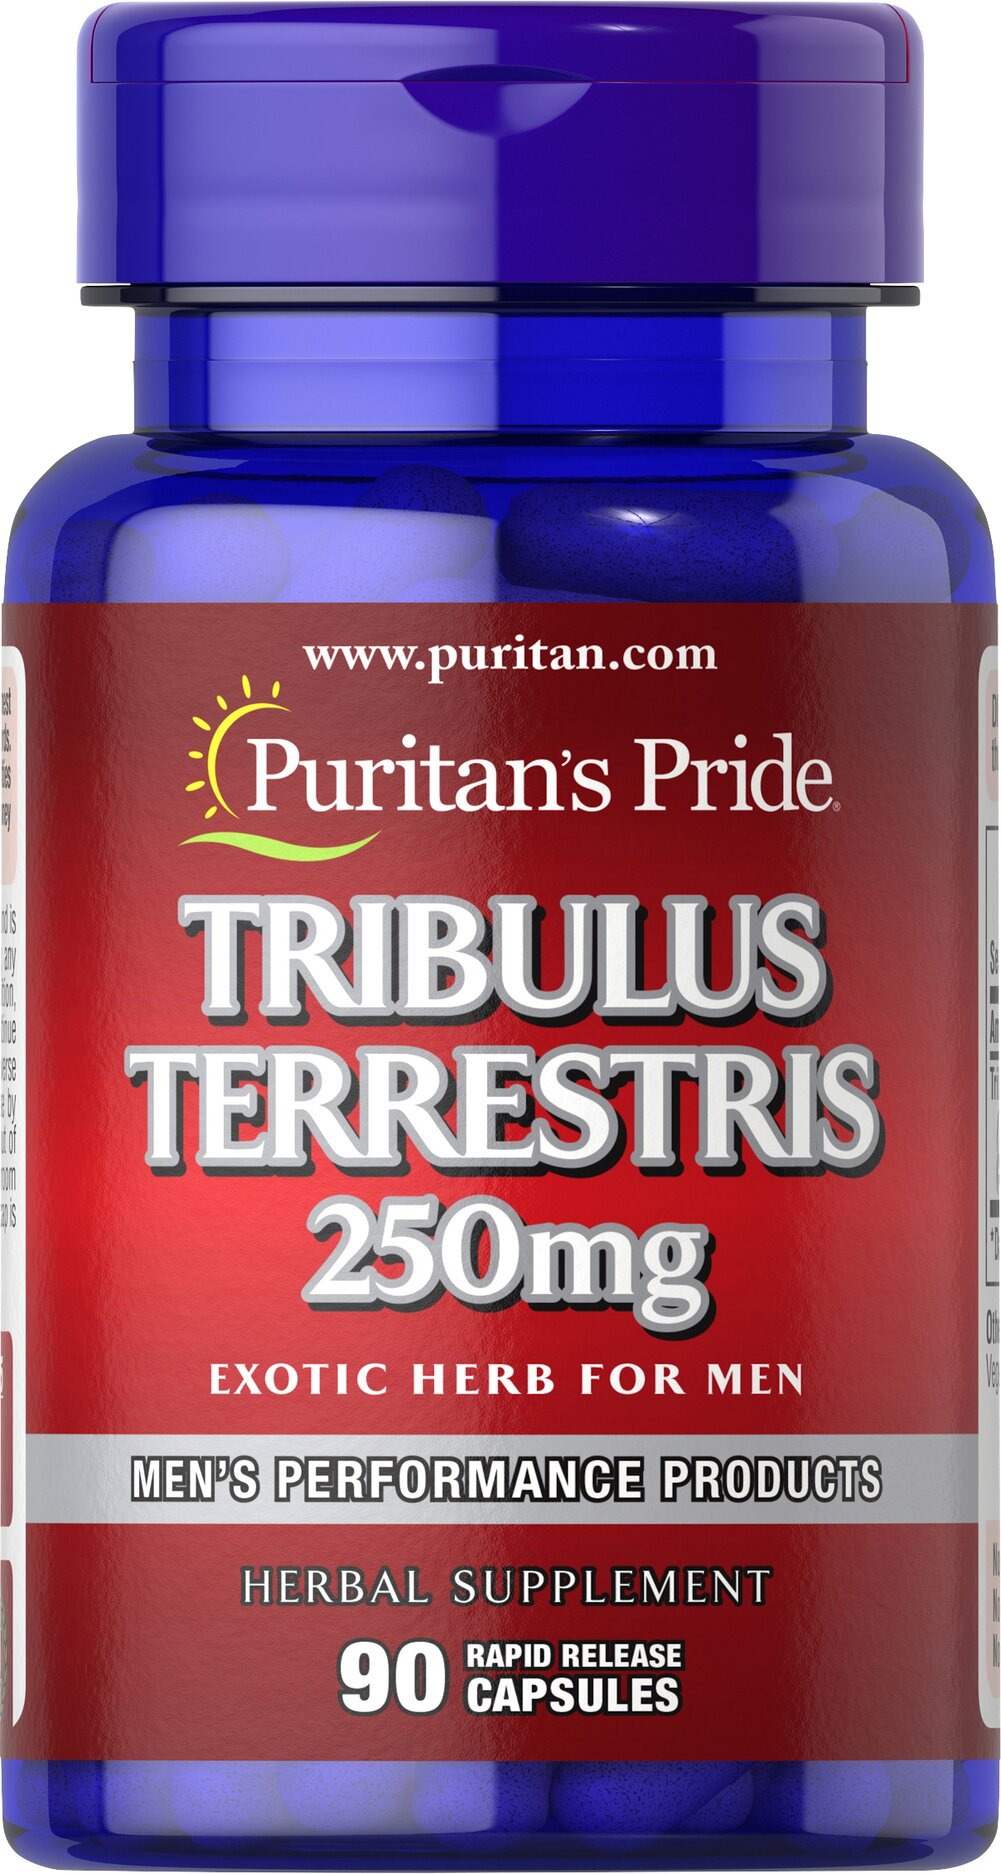 Tribulus Terrestris 250 mg <p>For Men</p><p>Tribulus Terrestris can be found throughout  Asia, where it has long been popular with bodybuilders. Tribulus Terrestris is lab-tested for 40% saponins per serving, one of the highest standardized levels available on the market today! As an herb traditionally used by men, Tribulus Terrestris is the perfect complement to your active lifestyle.</p> 90 Capsules 250 mg $11.29